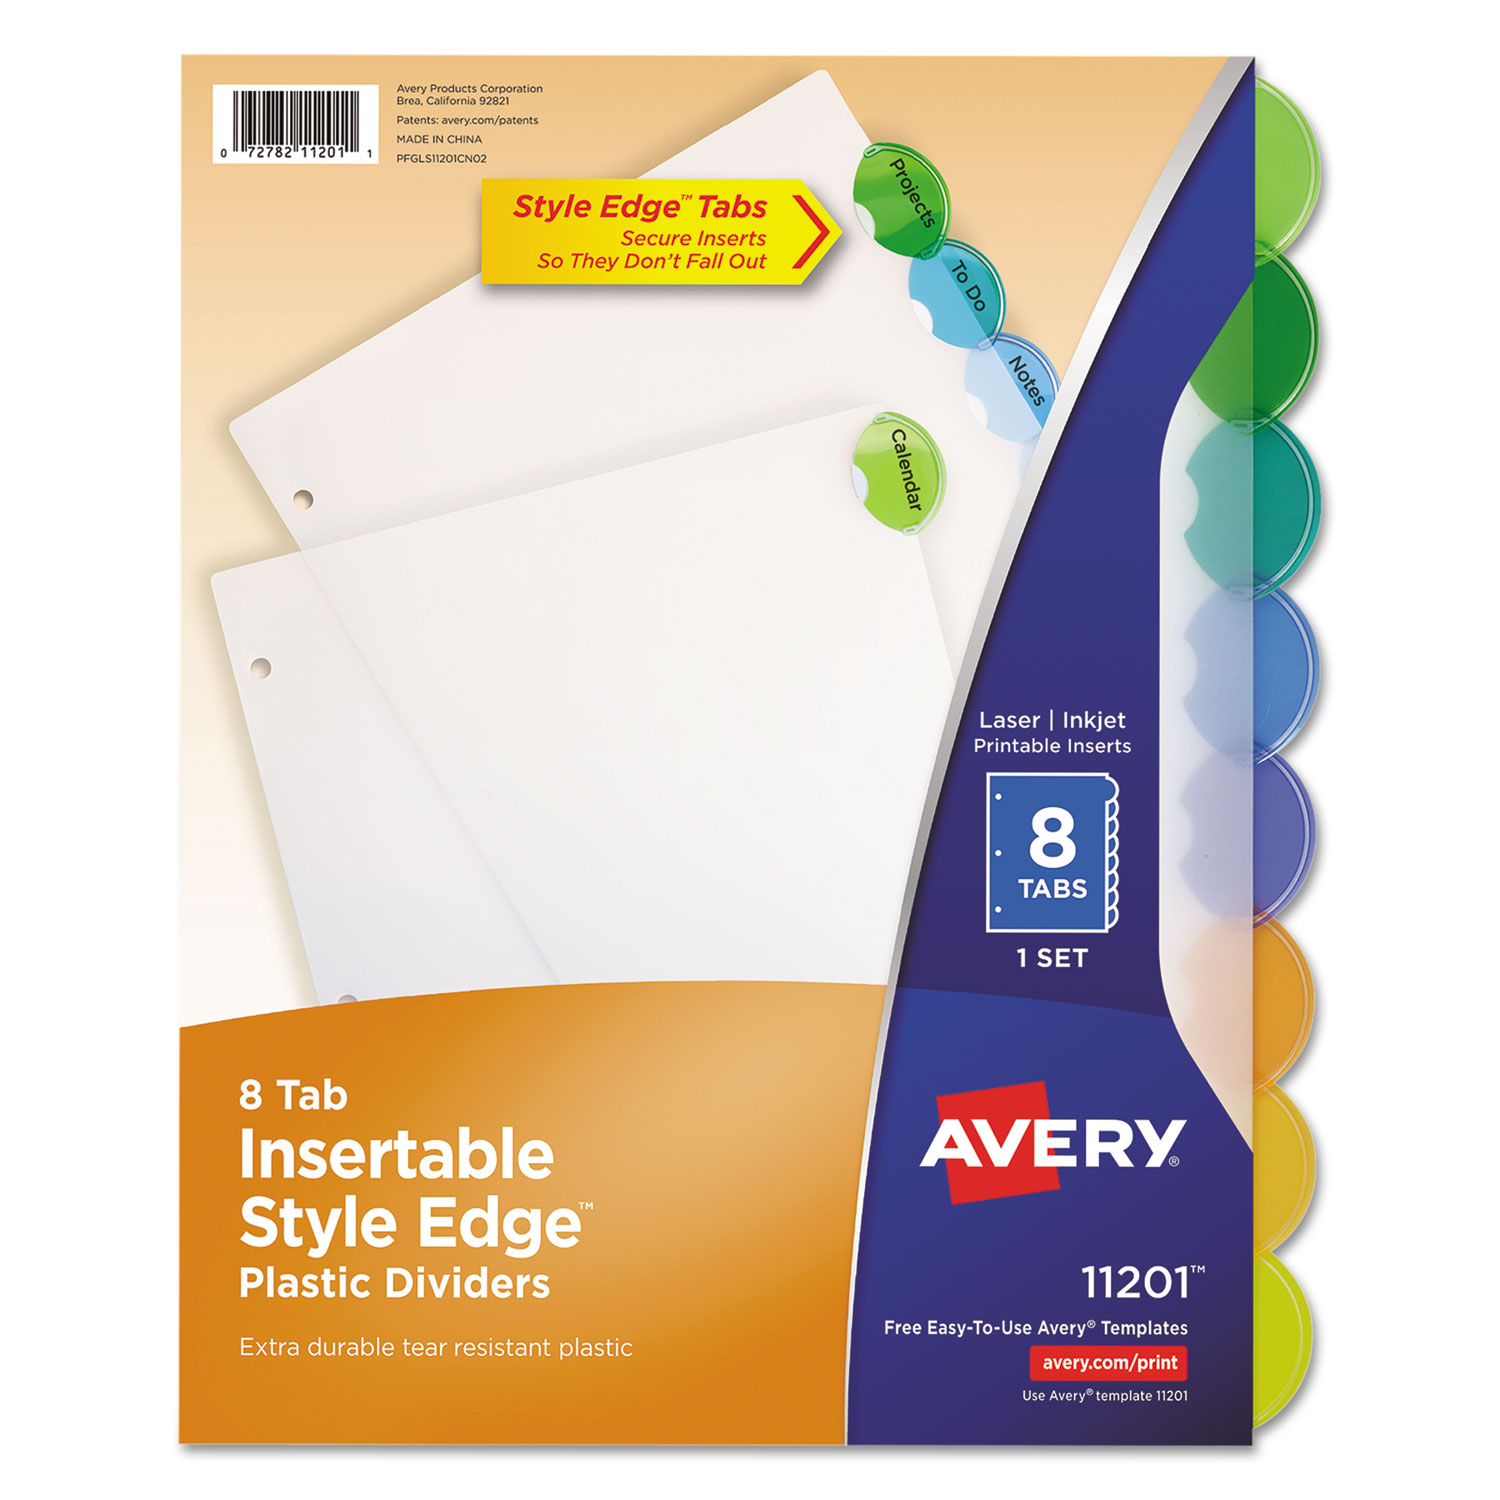 Insertable Style Edge Tab Plastic Dividers By Avery Ave11201